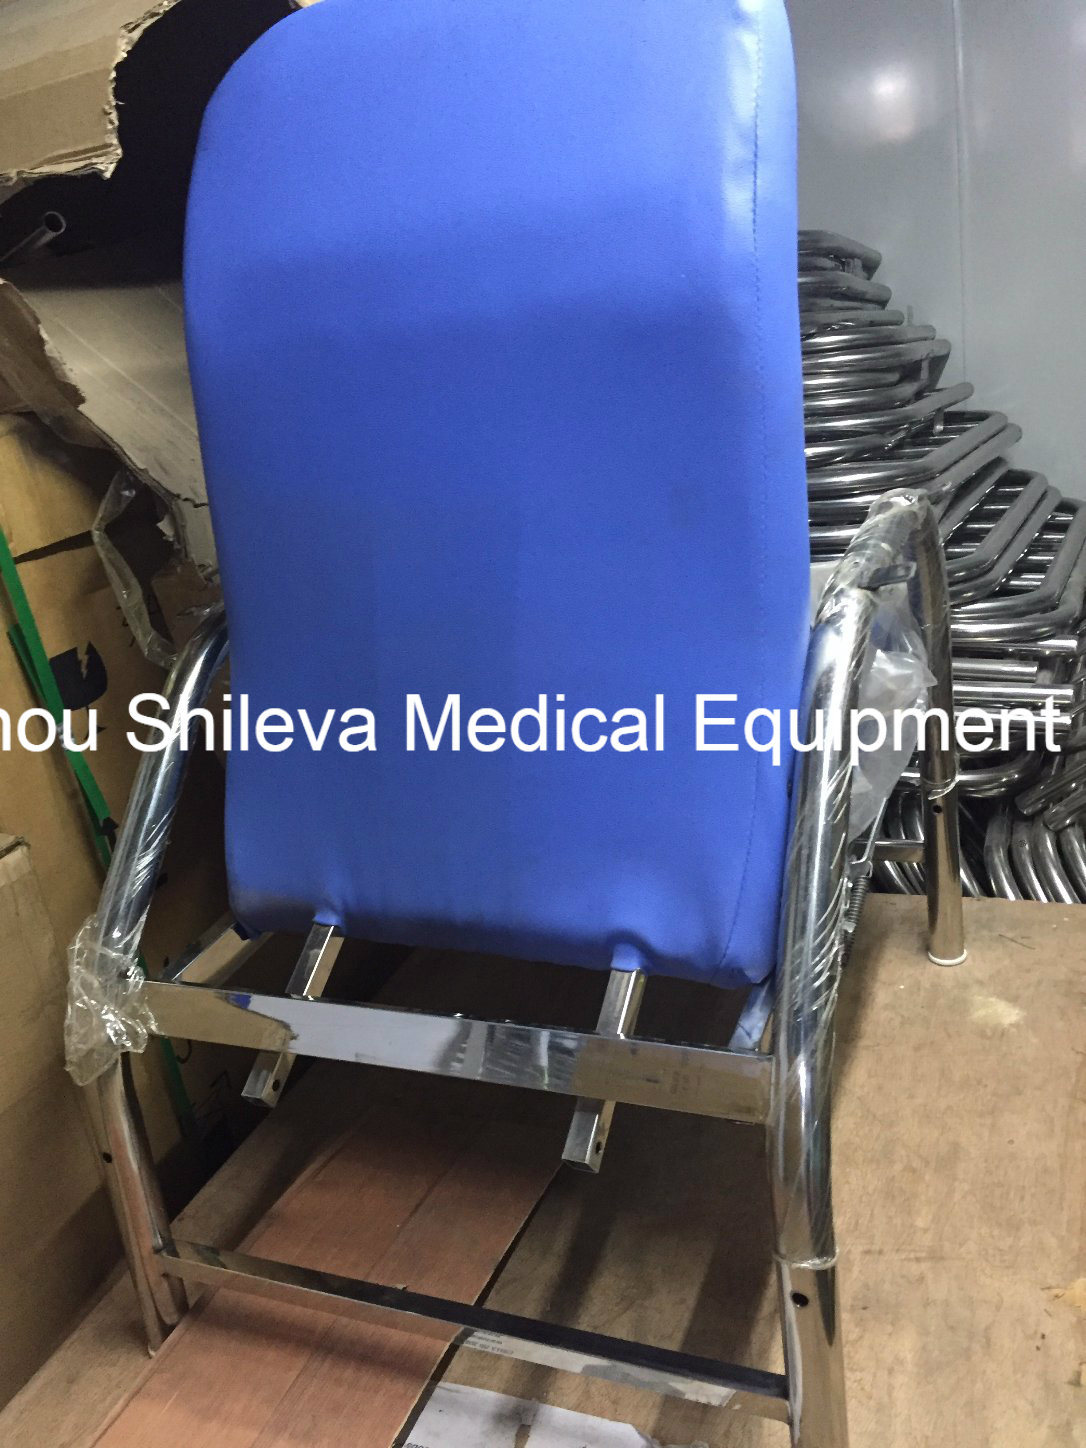 Soft Folding Chairs Hot Item Soft Mattress Cheap Folding Chairs Accompany Patients In Hospital Waiting Chair